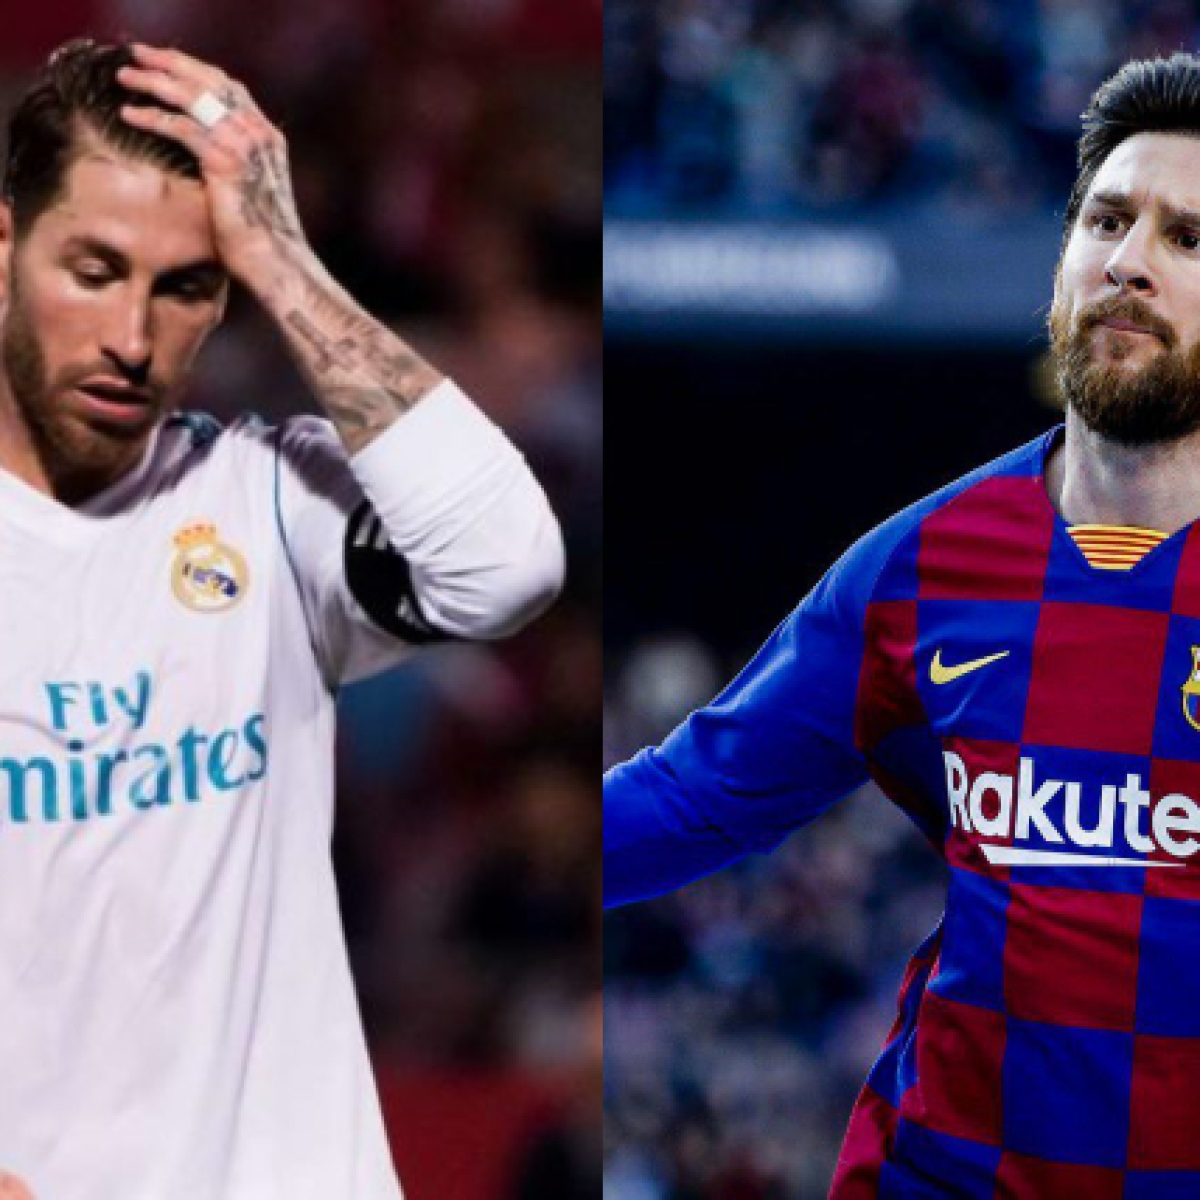 Real Madrid skipper Sergio Ramos wants Lionel Messi to stay at Barcelona